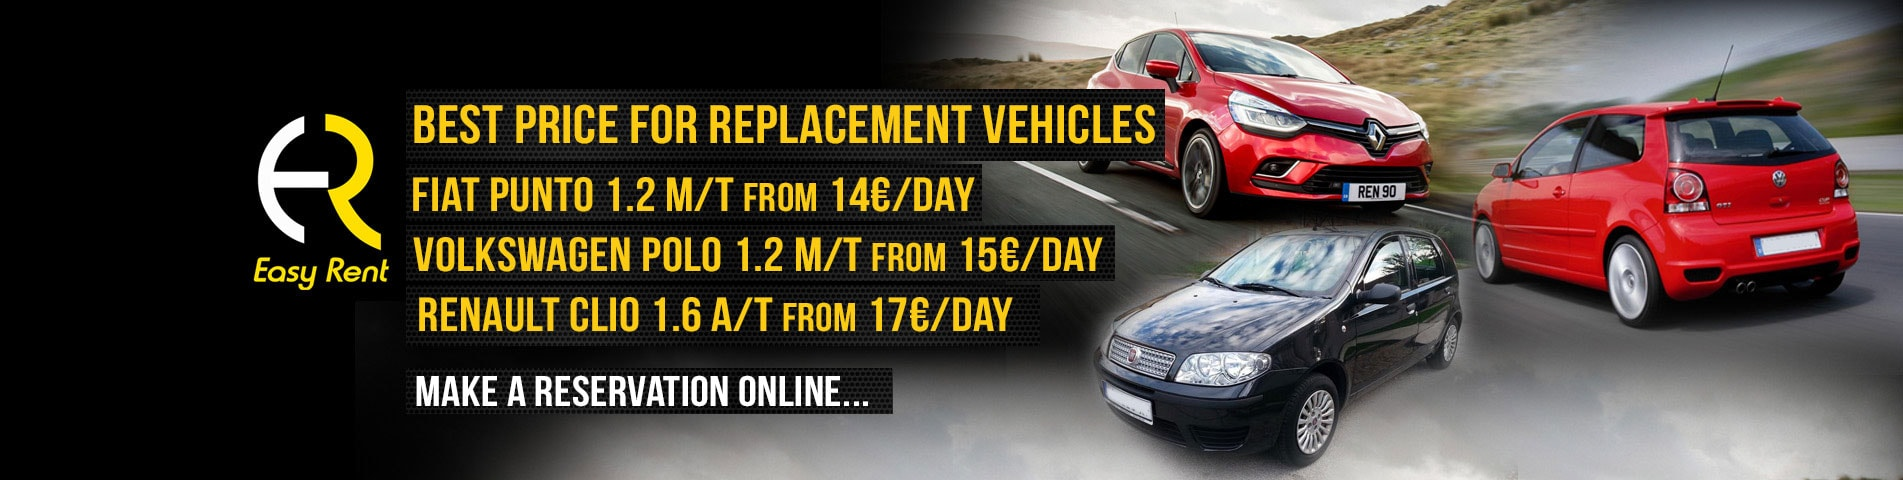 replacement-vehicles